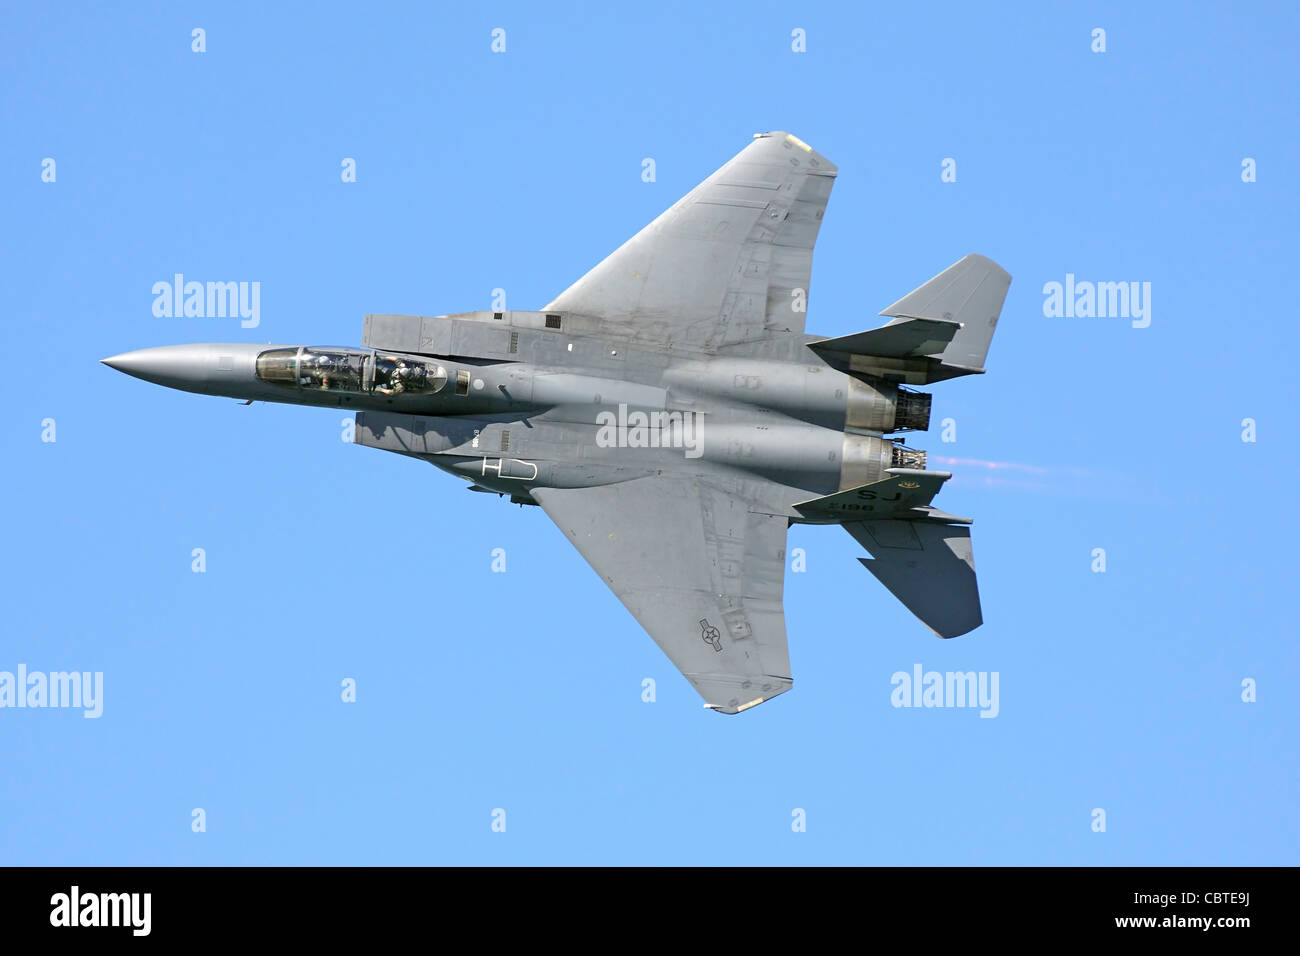 U.S. Air Force F-15 Eagle in flight. - Stock Image